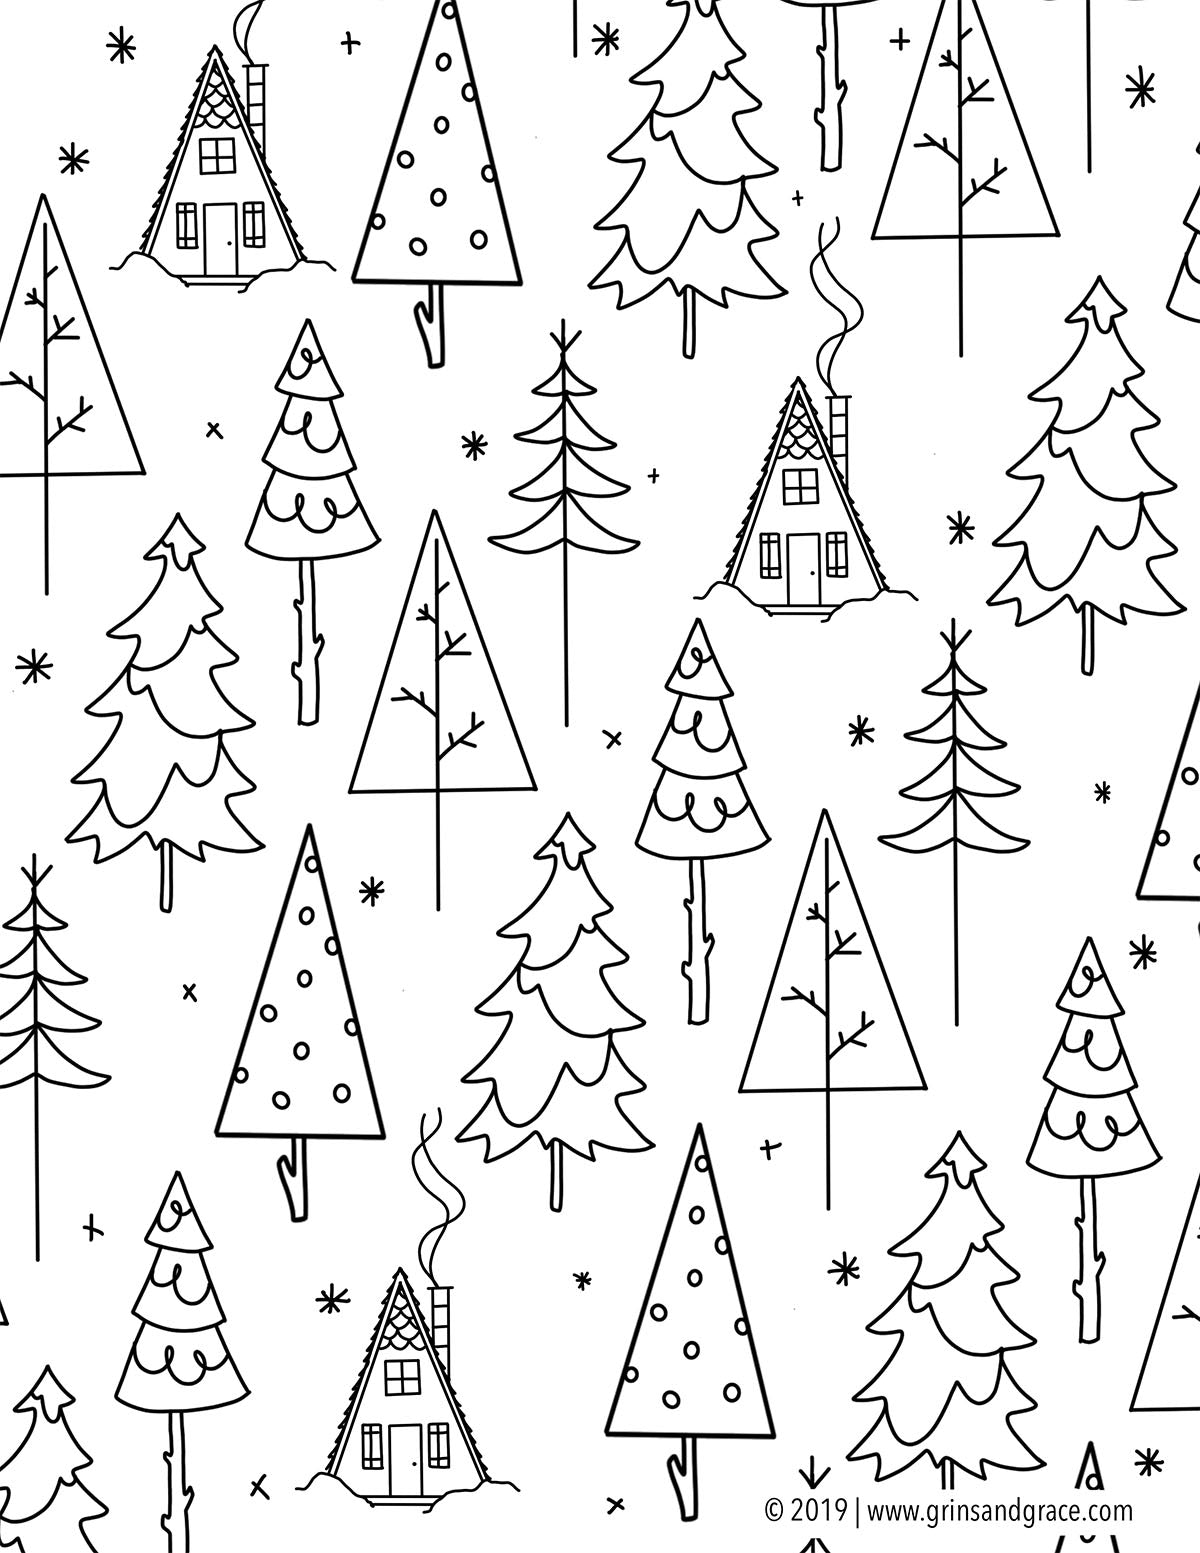 December Coloring Pages that are Perfect for Winter Break